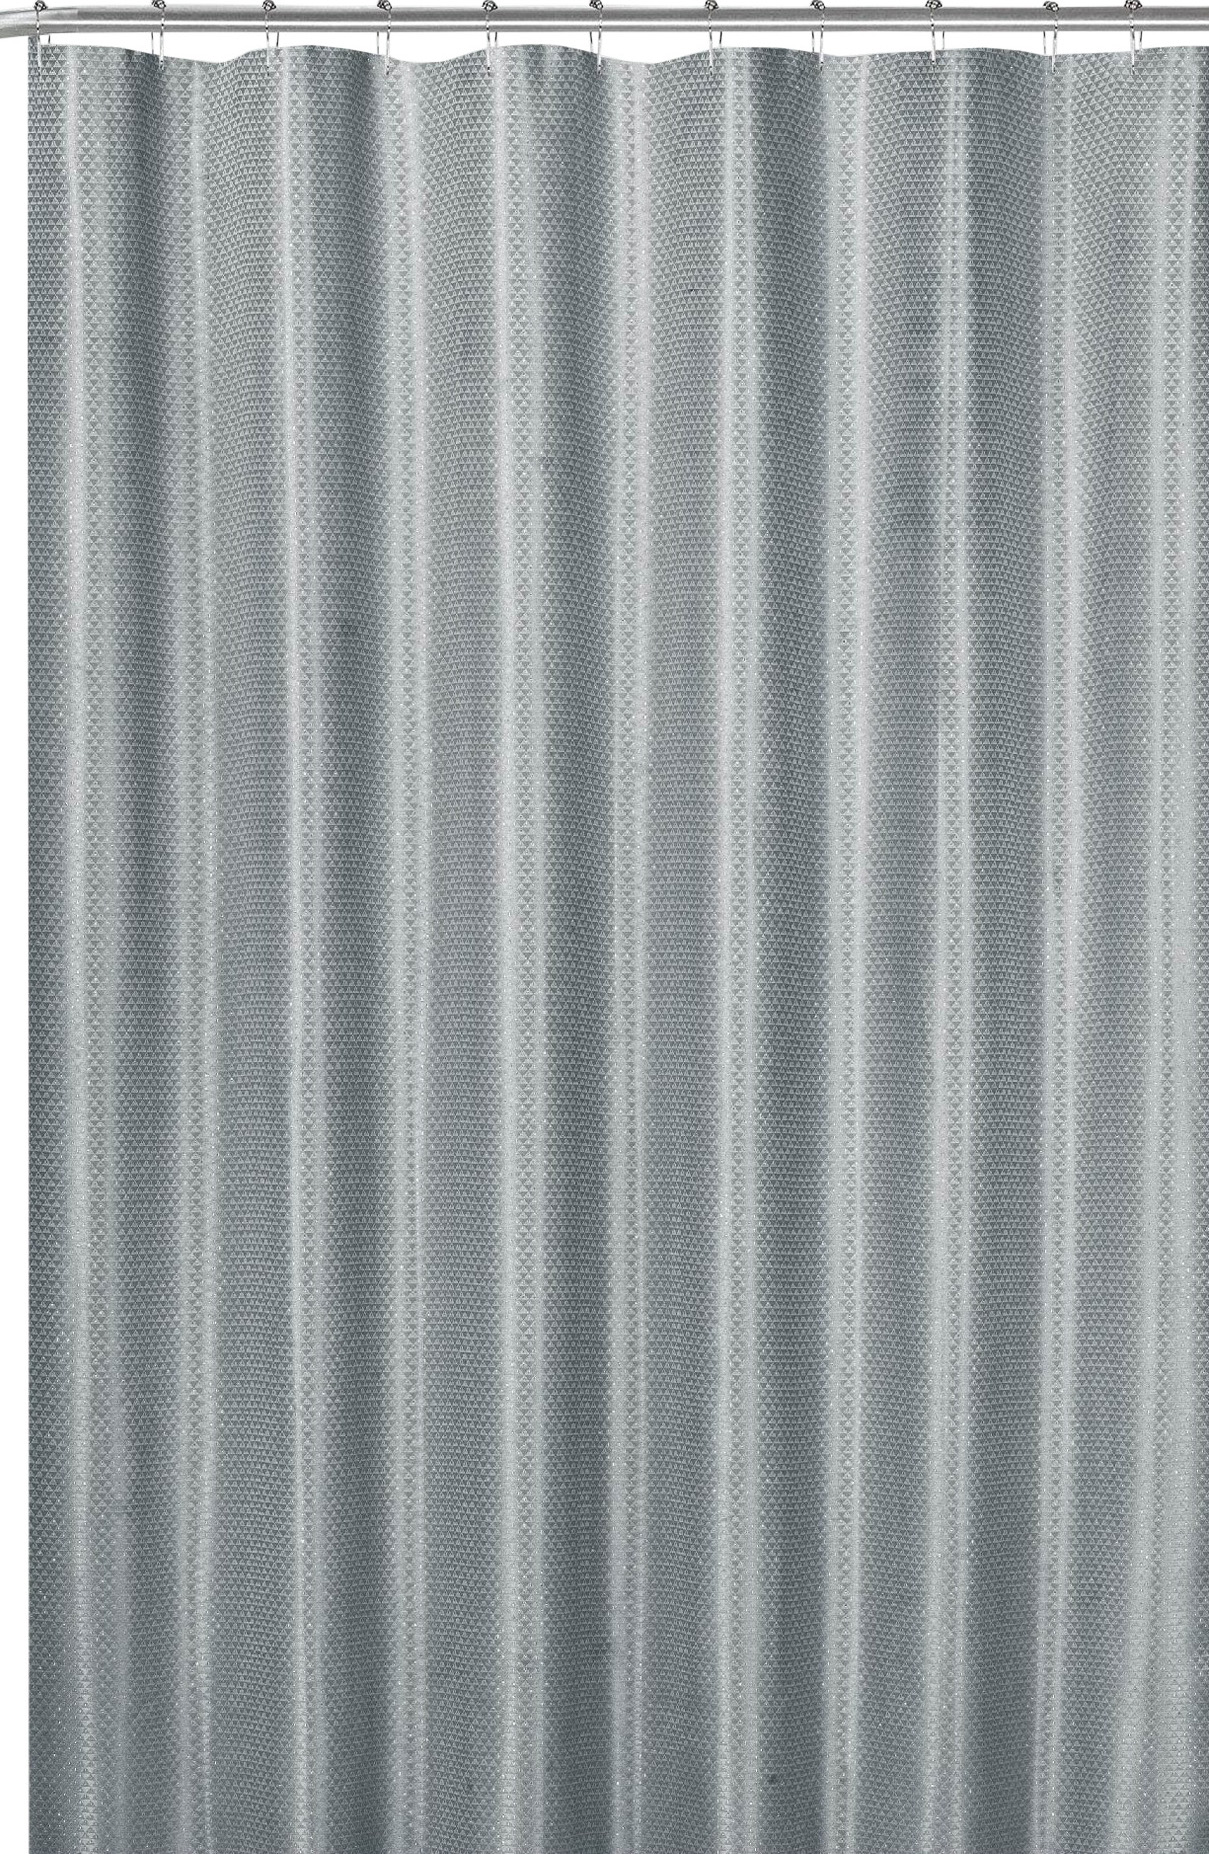 gray fabric shower curtain modern geometric with silver metallic accent